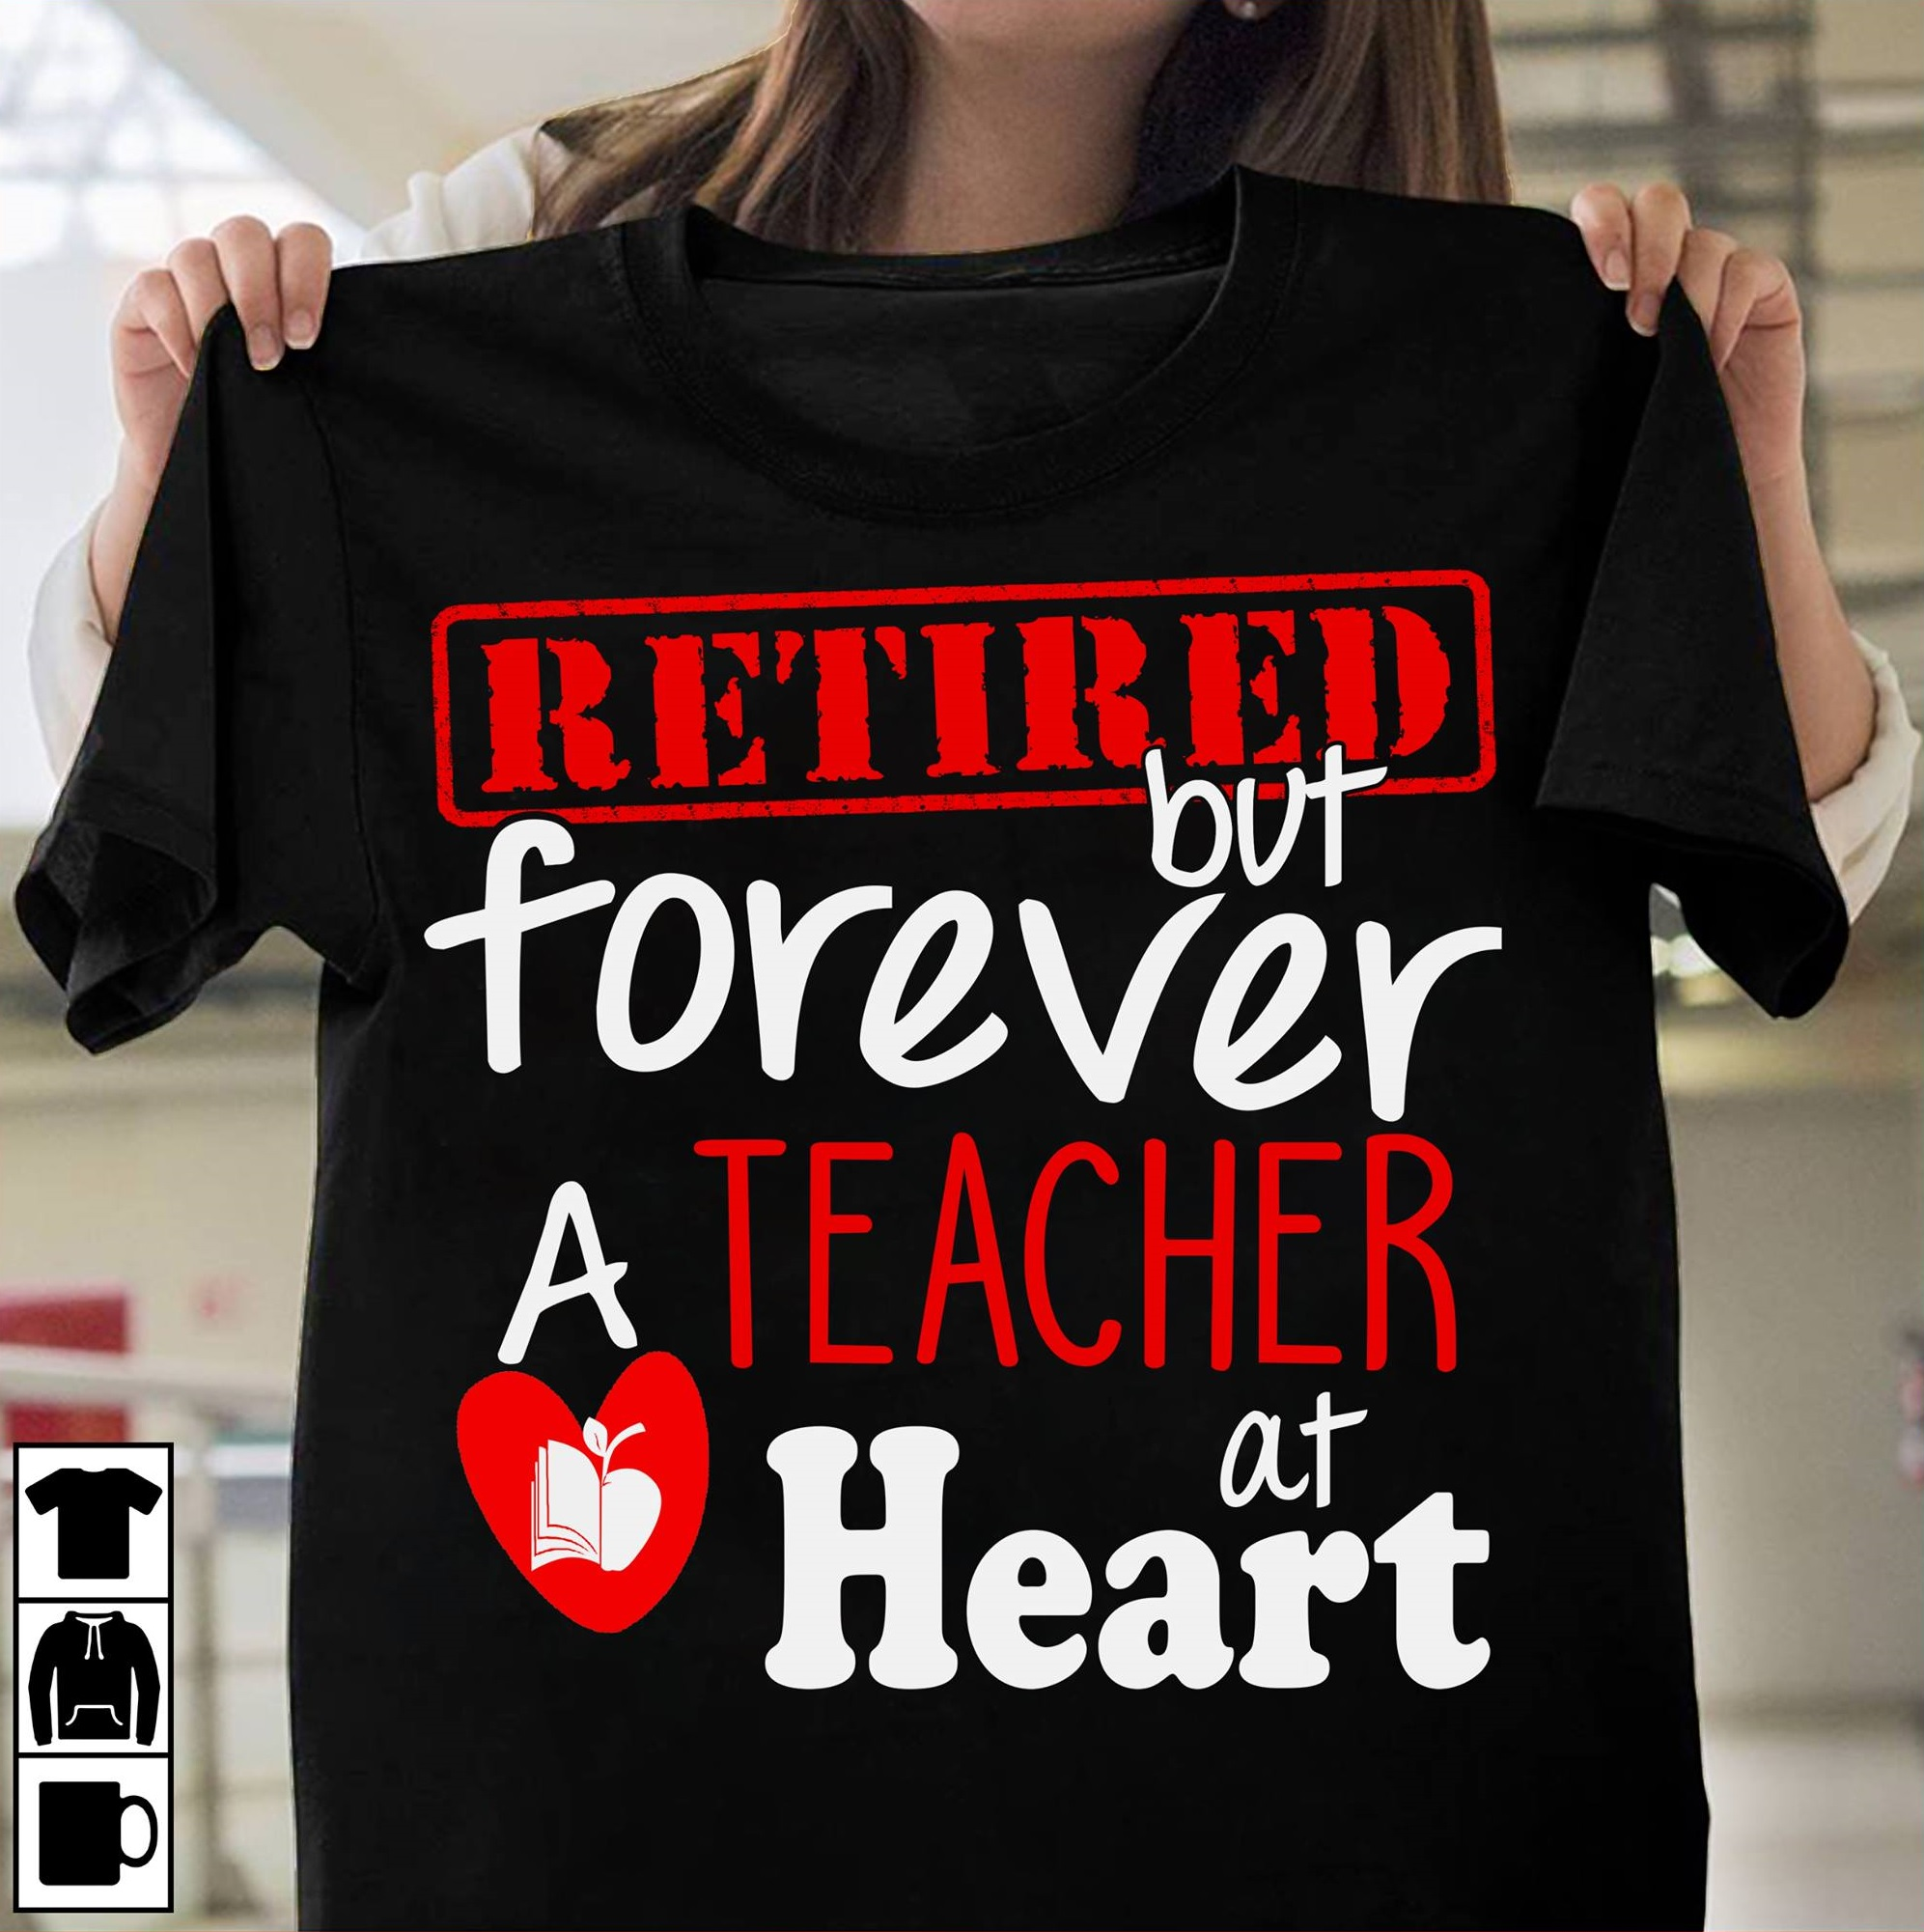 Retired Teacher Shirt Retired But Forever A Teacher At Heart